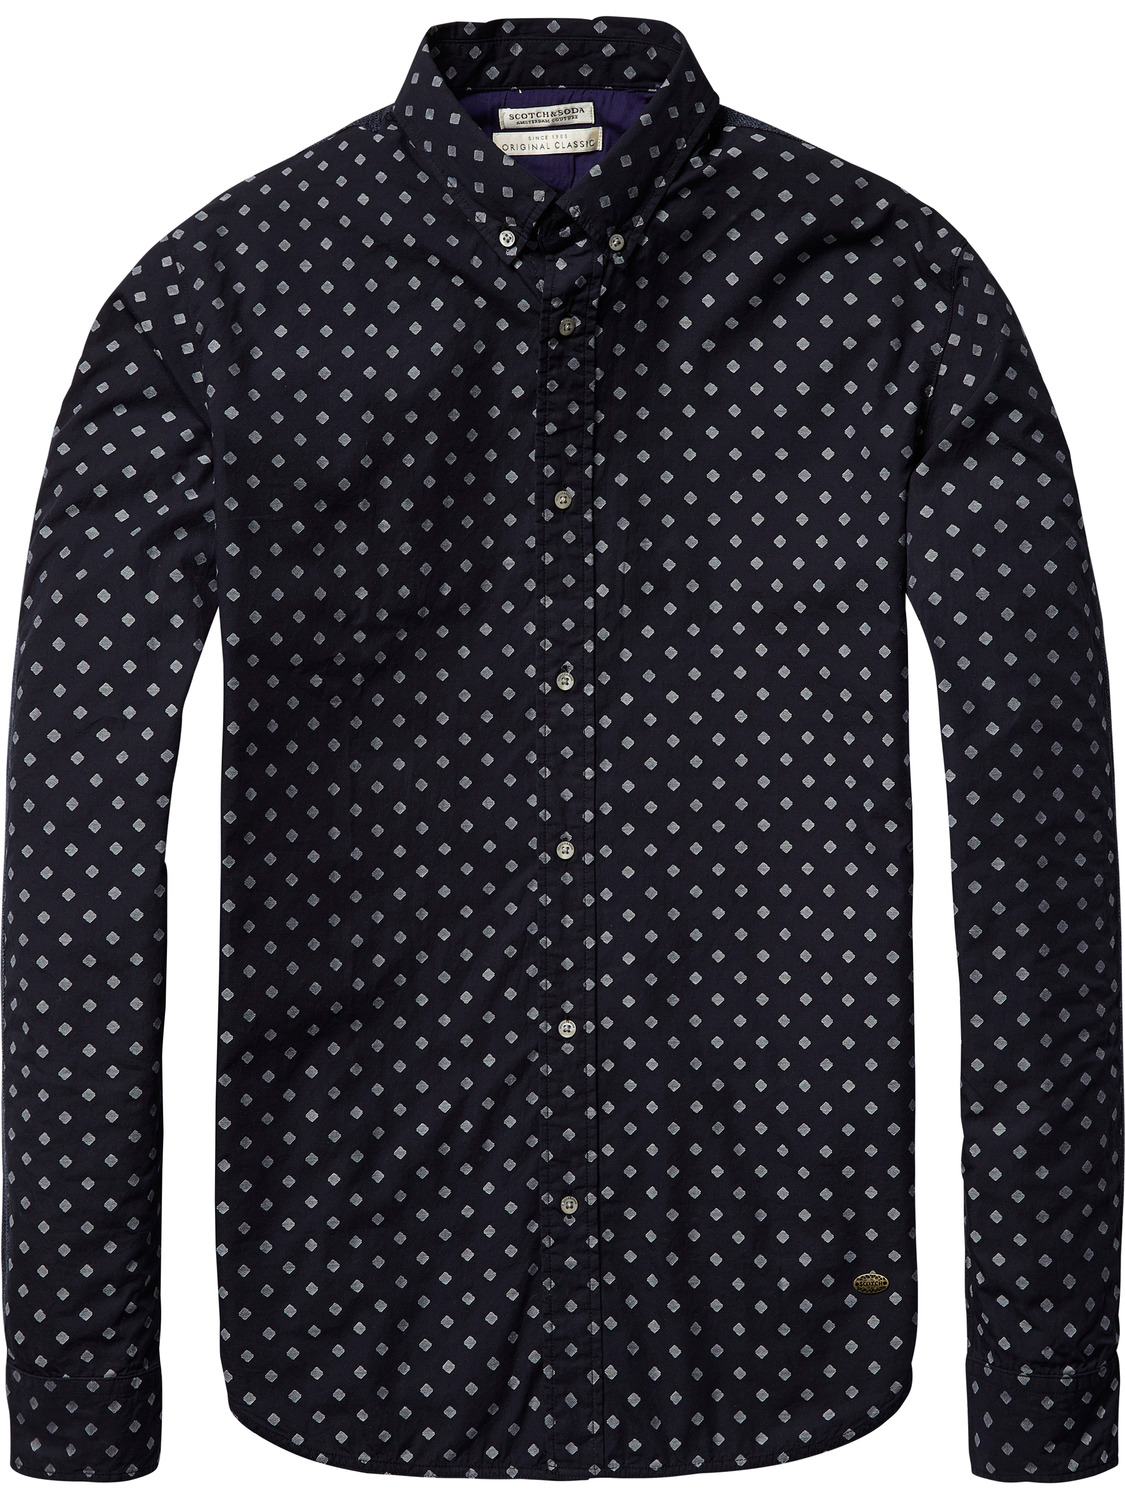 Donkerblauw heren overhemd Scotch & Soda - 101416